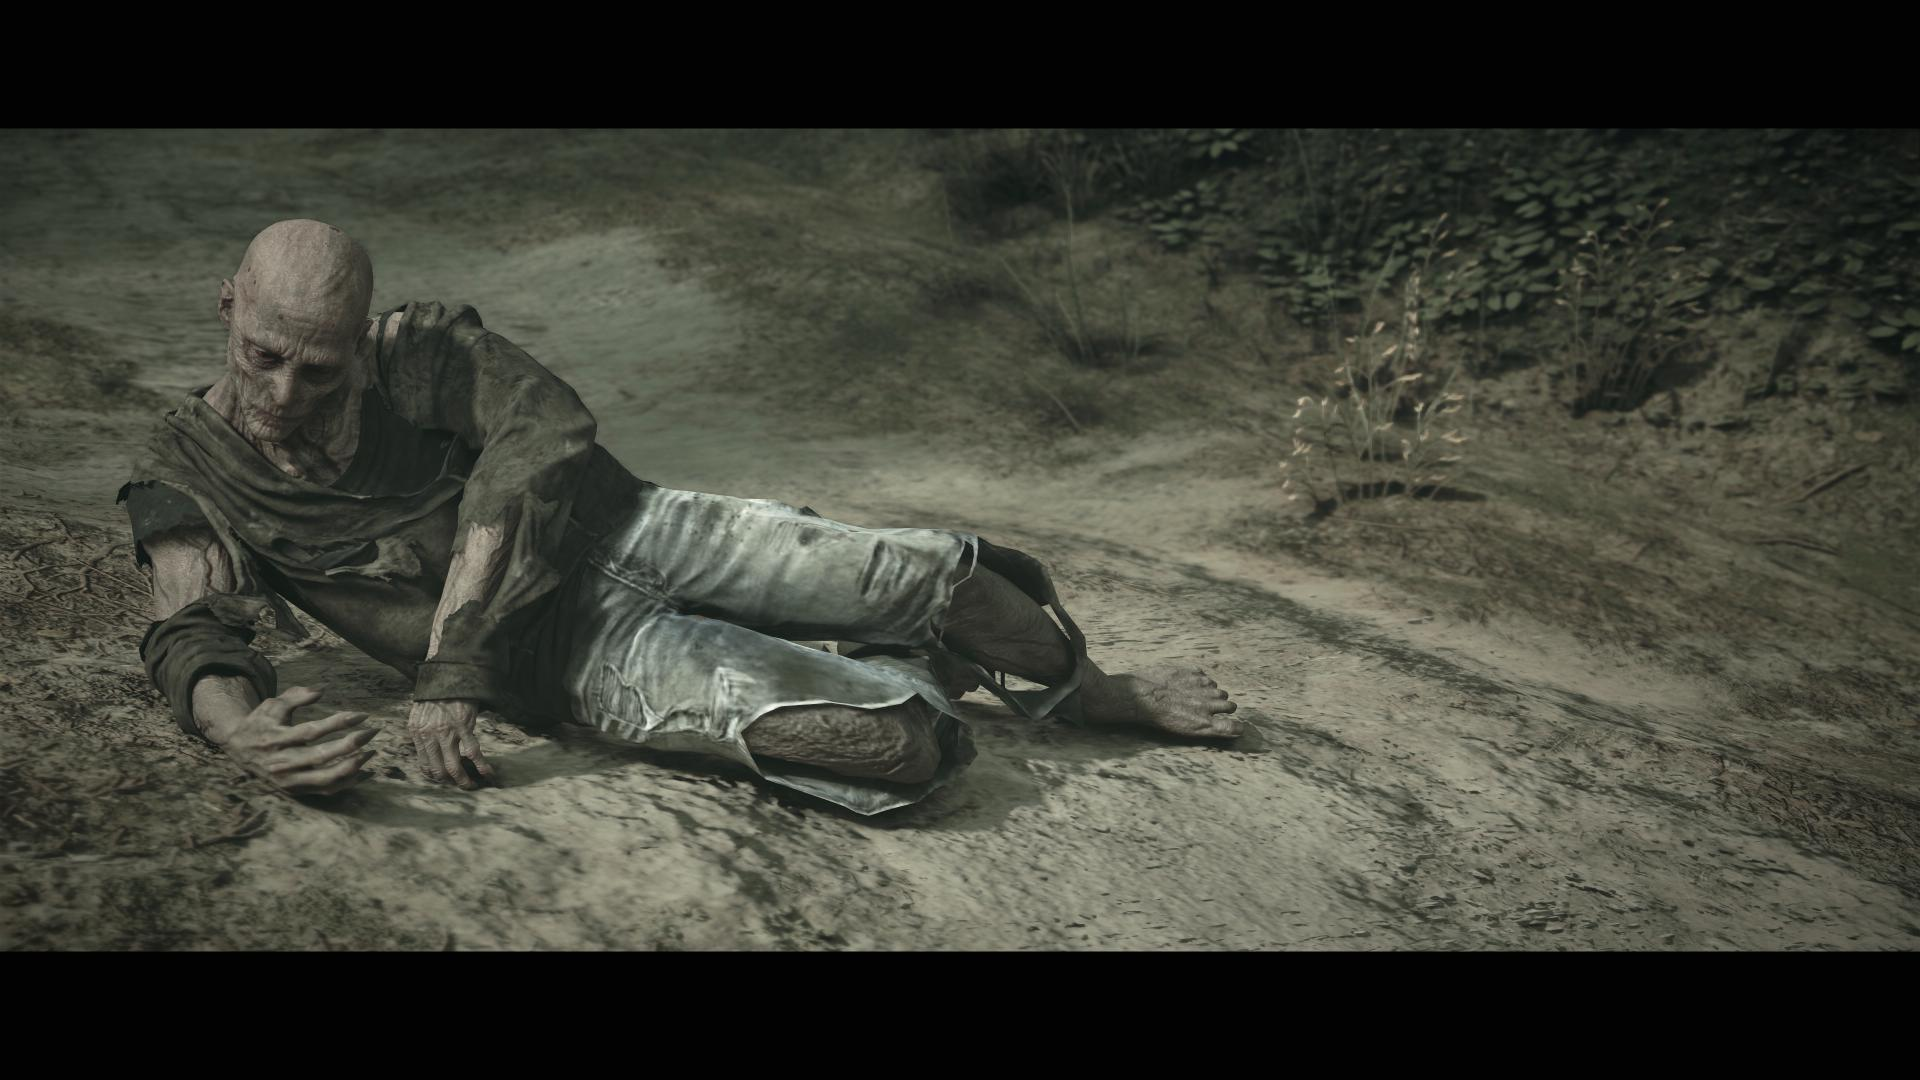 An almost sepia shot of a zombie, its clothes torn, lying on a dirt path